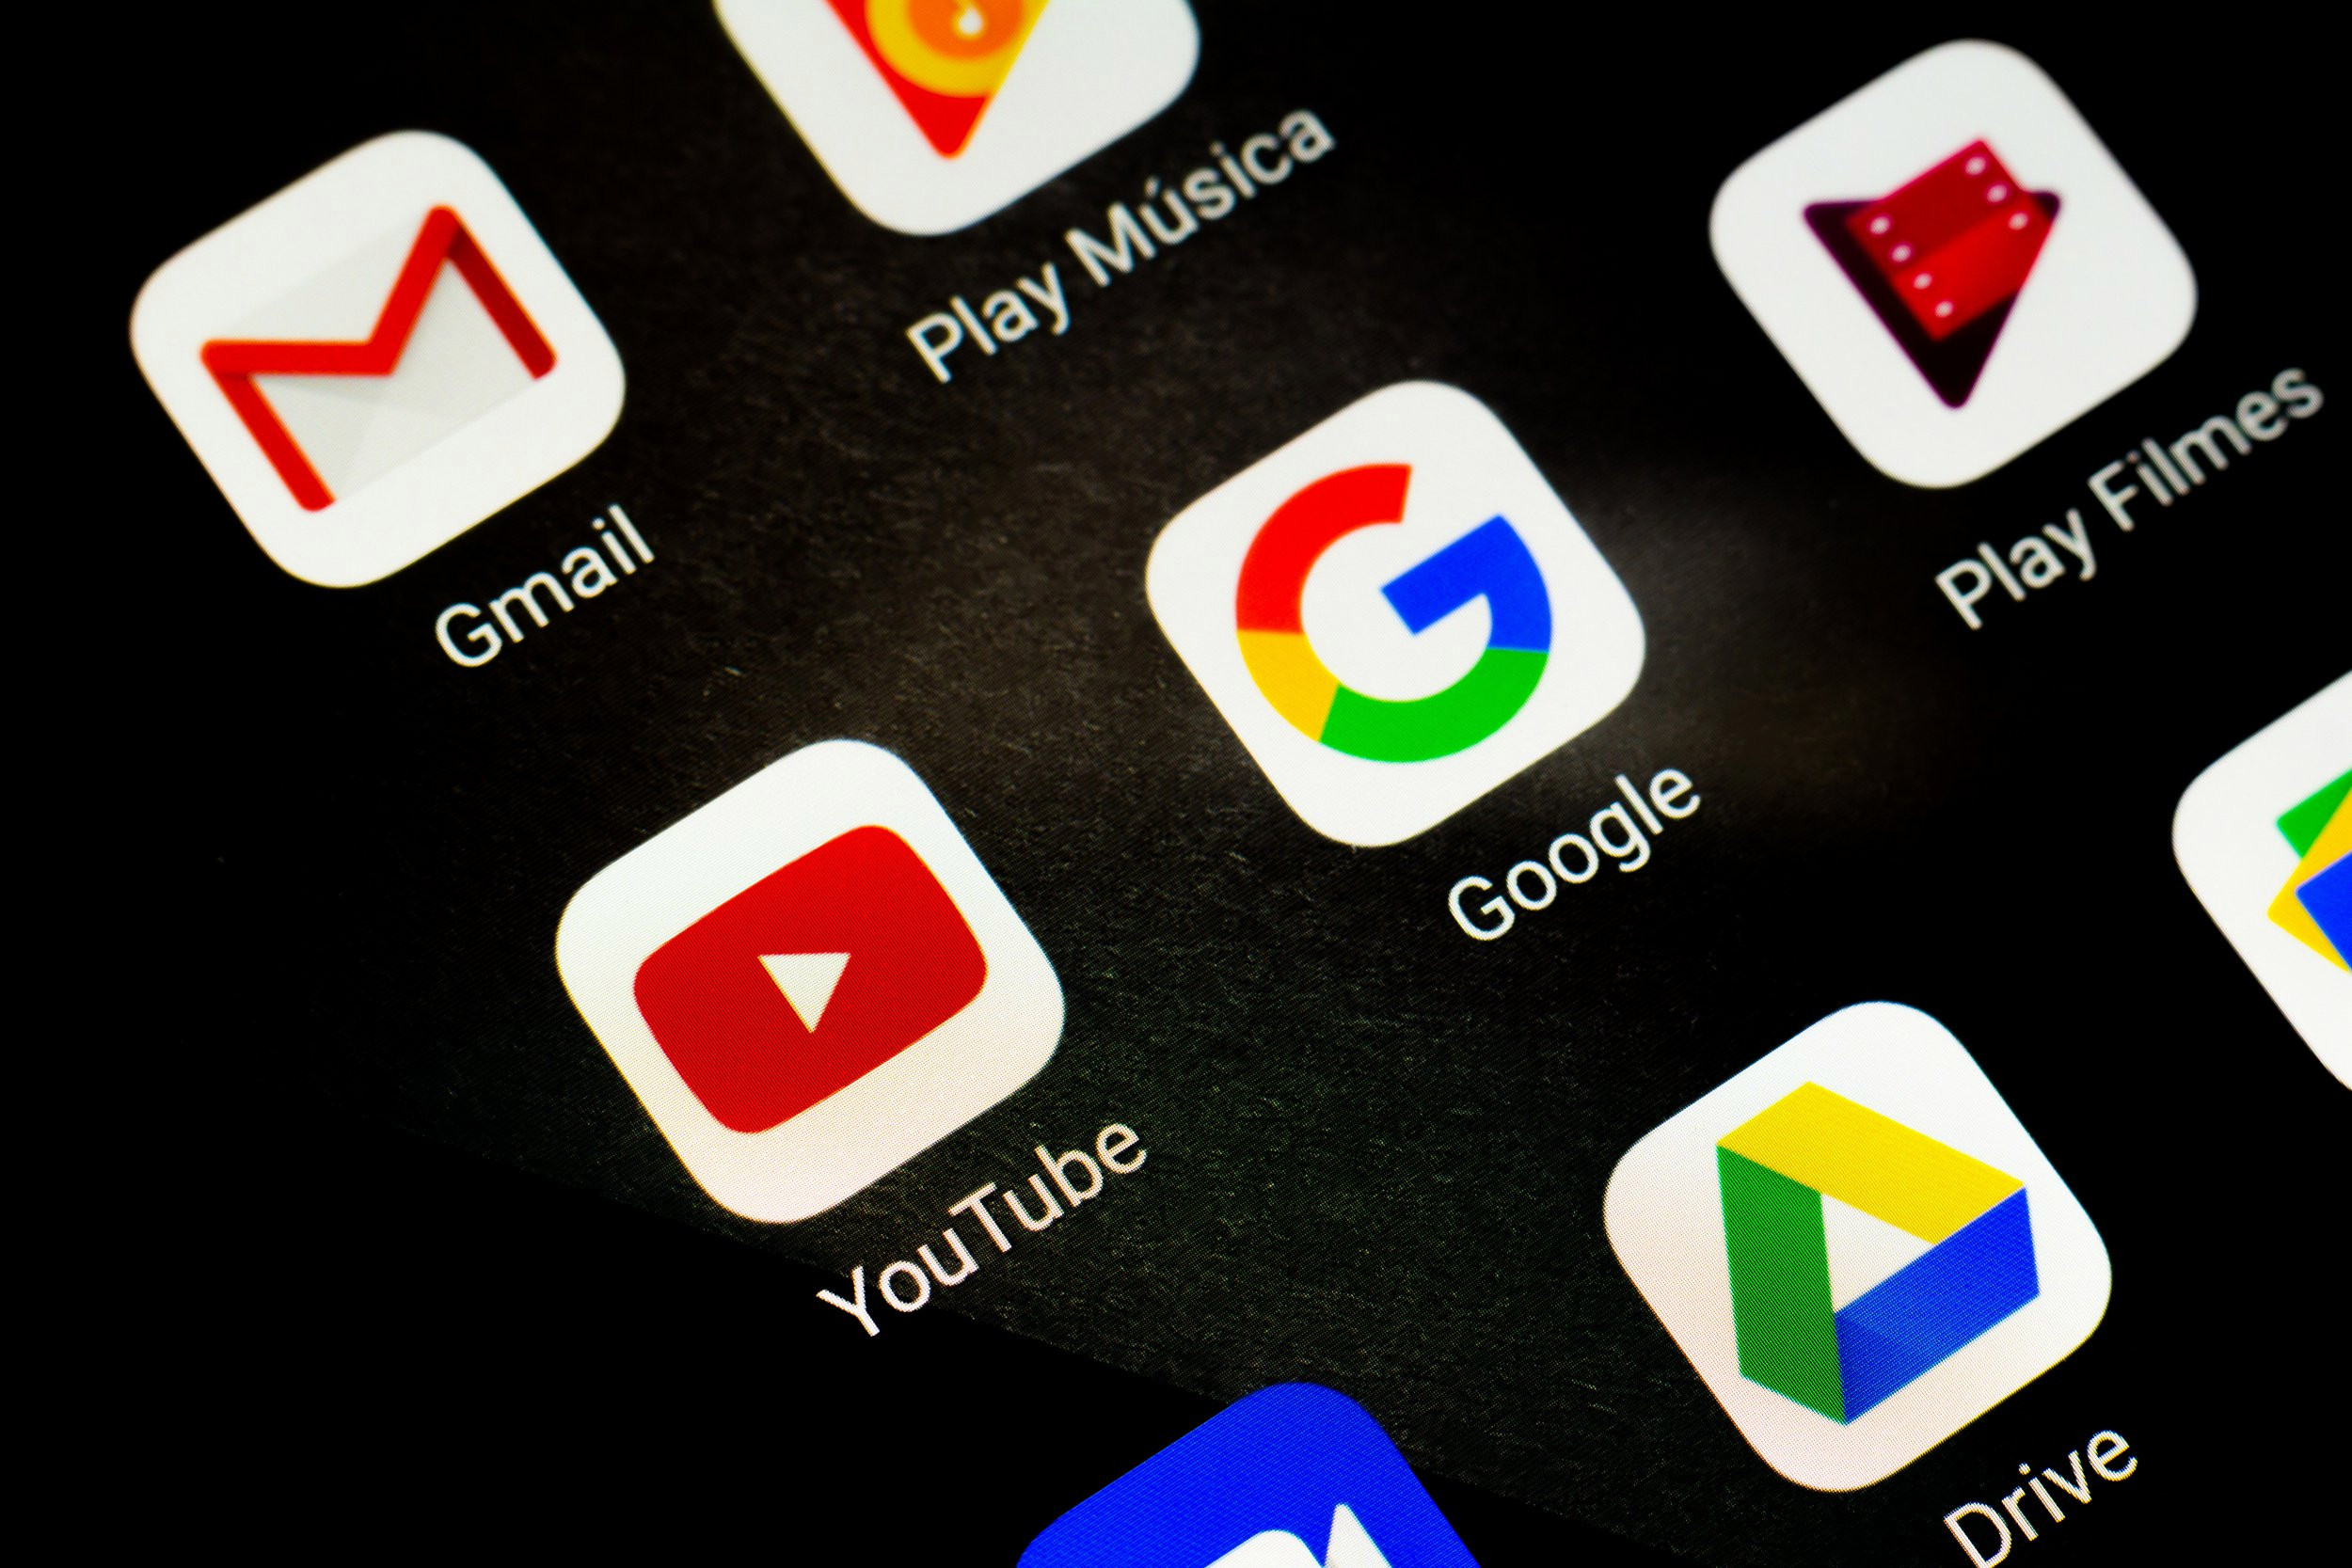 Gmail, YouTube and other Google services are back after global outage